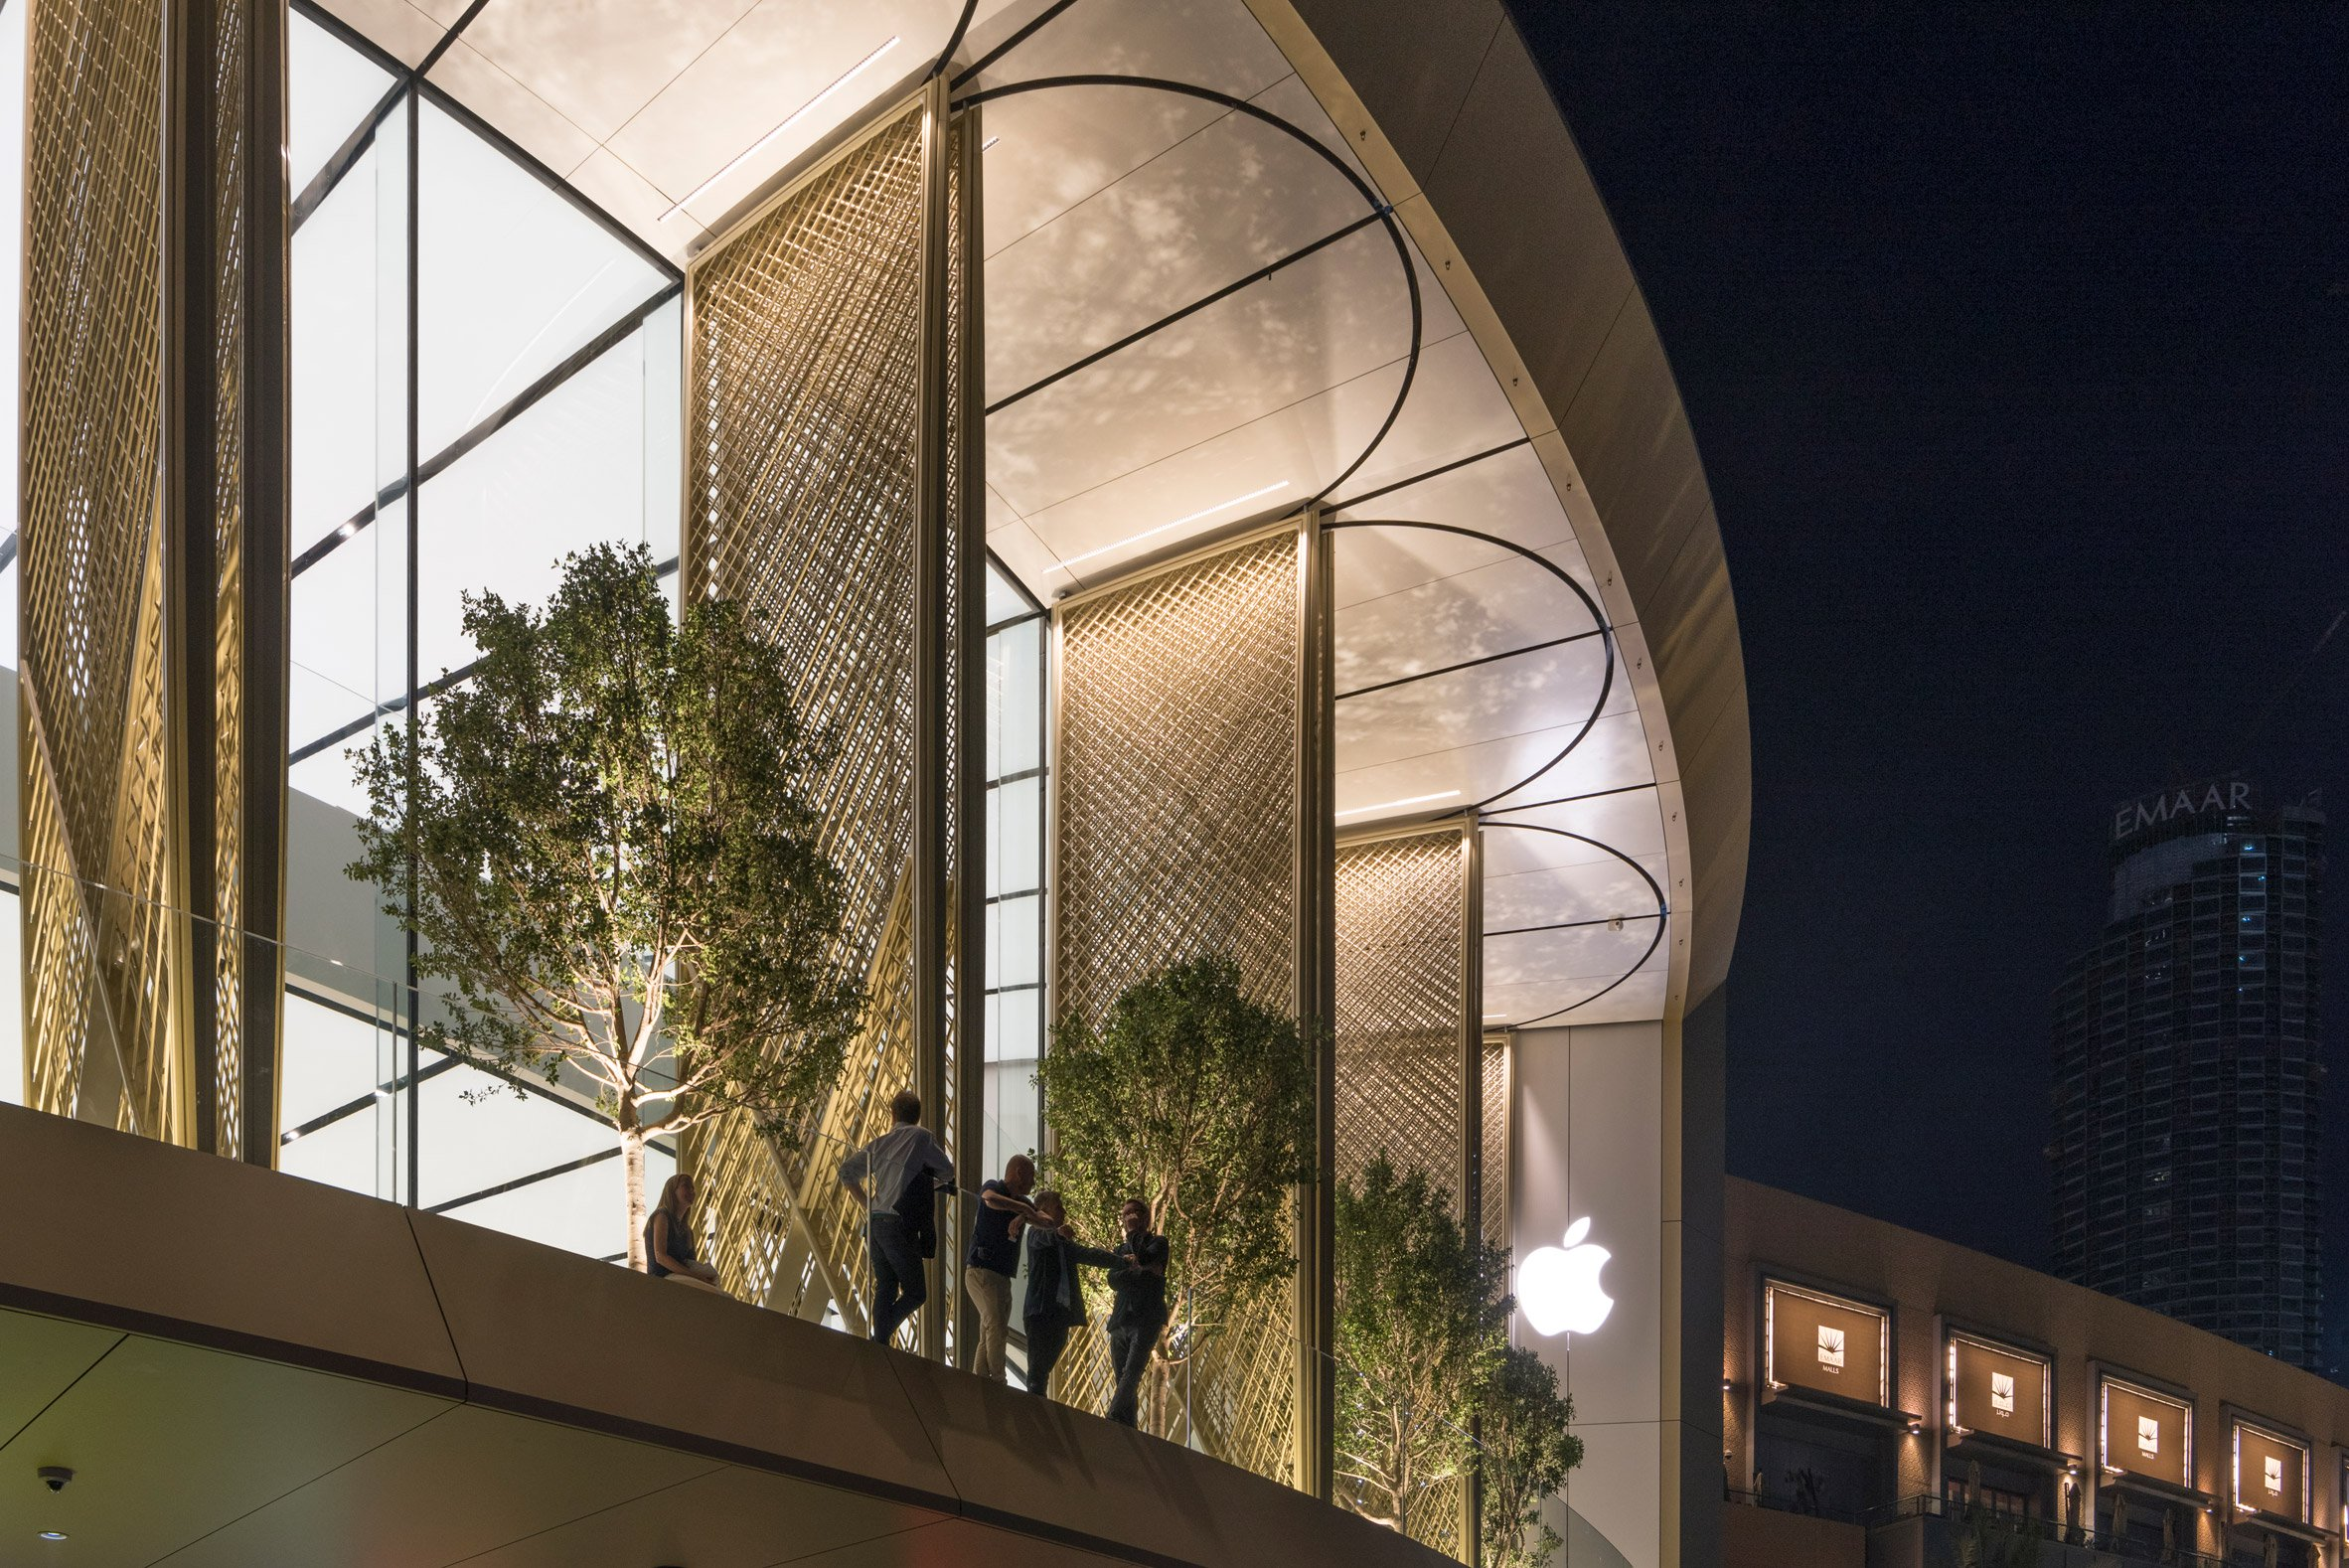 Studio Foster + Partners Adds Carbon-Fibre Covers to Dubai Apple Store foster + partners Studio Foster + Partners Adds Carbon-Fibre Covers to Dubai Apple Store Studio Foster Partners Adds Carbon Fibre Covers to Dubai Apple Store 2